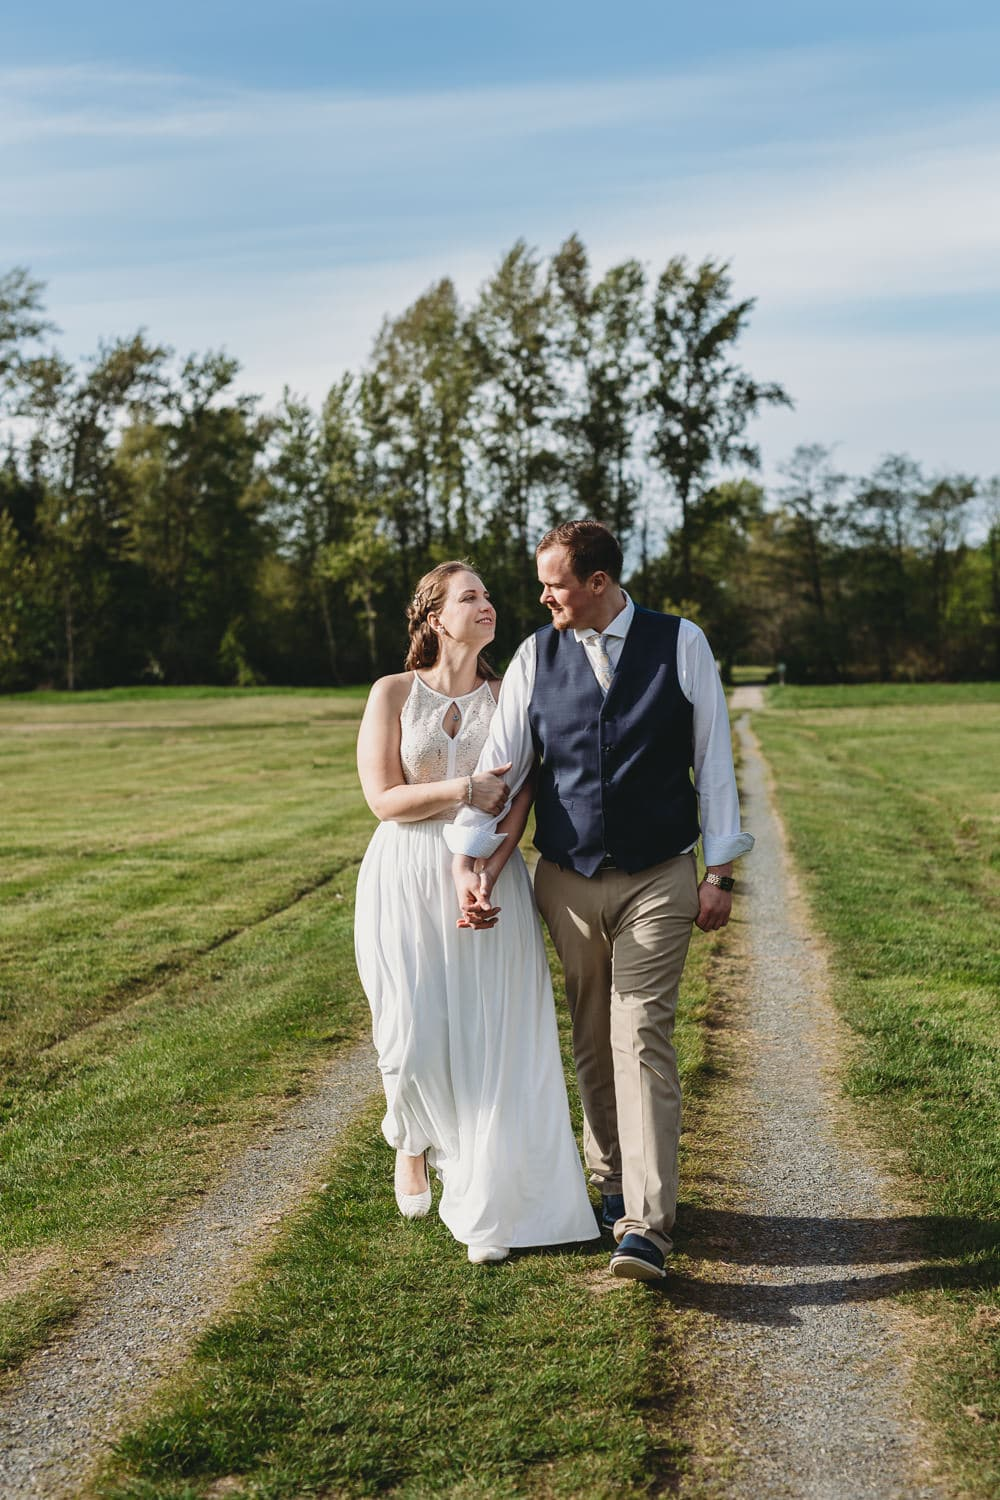 couples portraits at campbell valley park after hand-fasting elopement ceremony